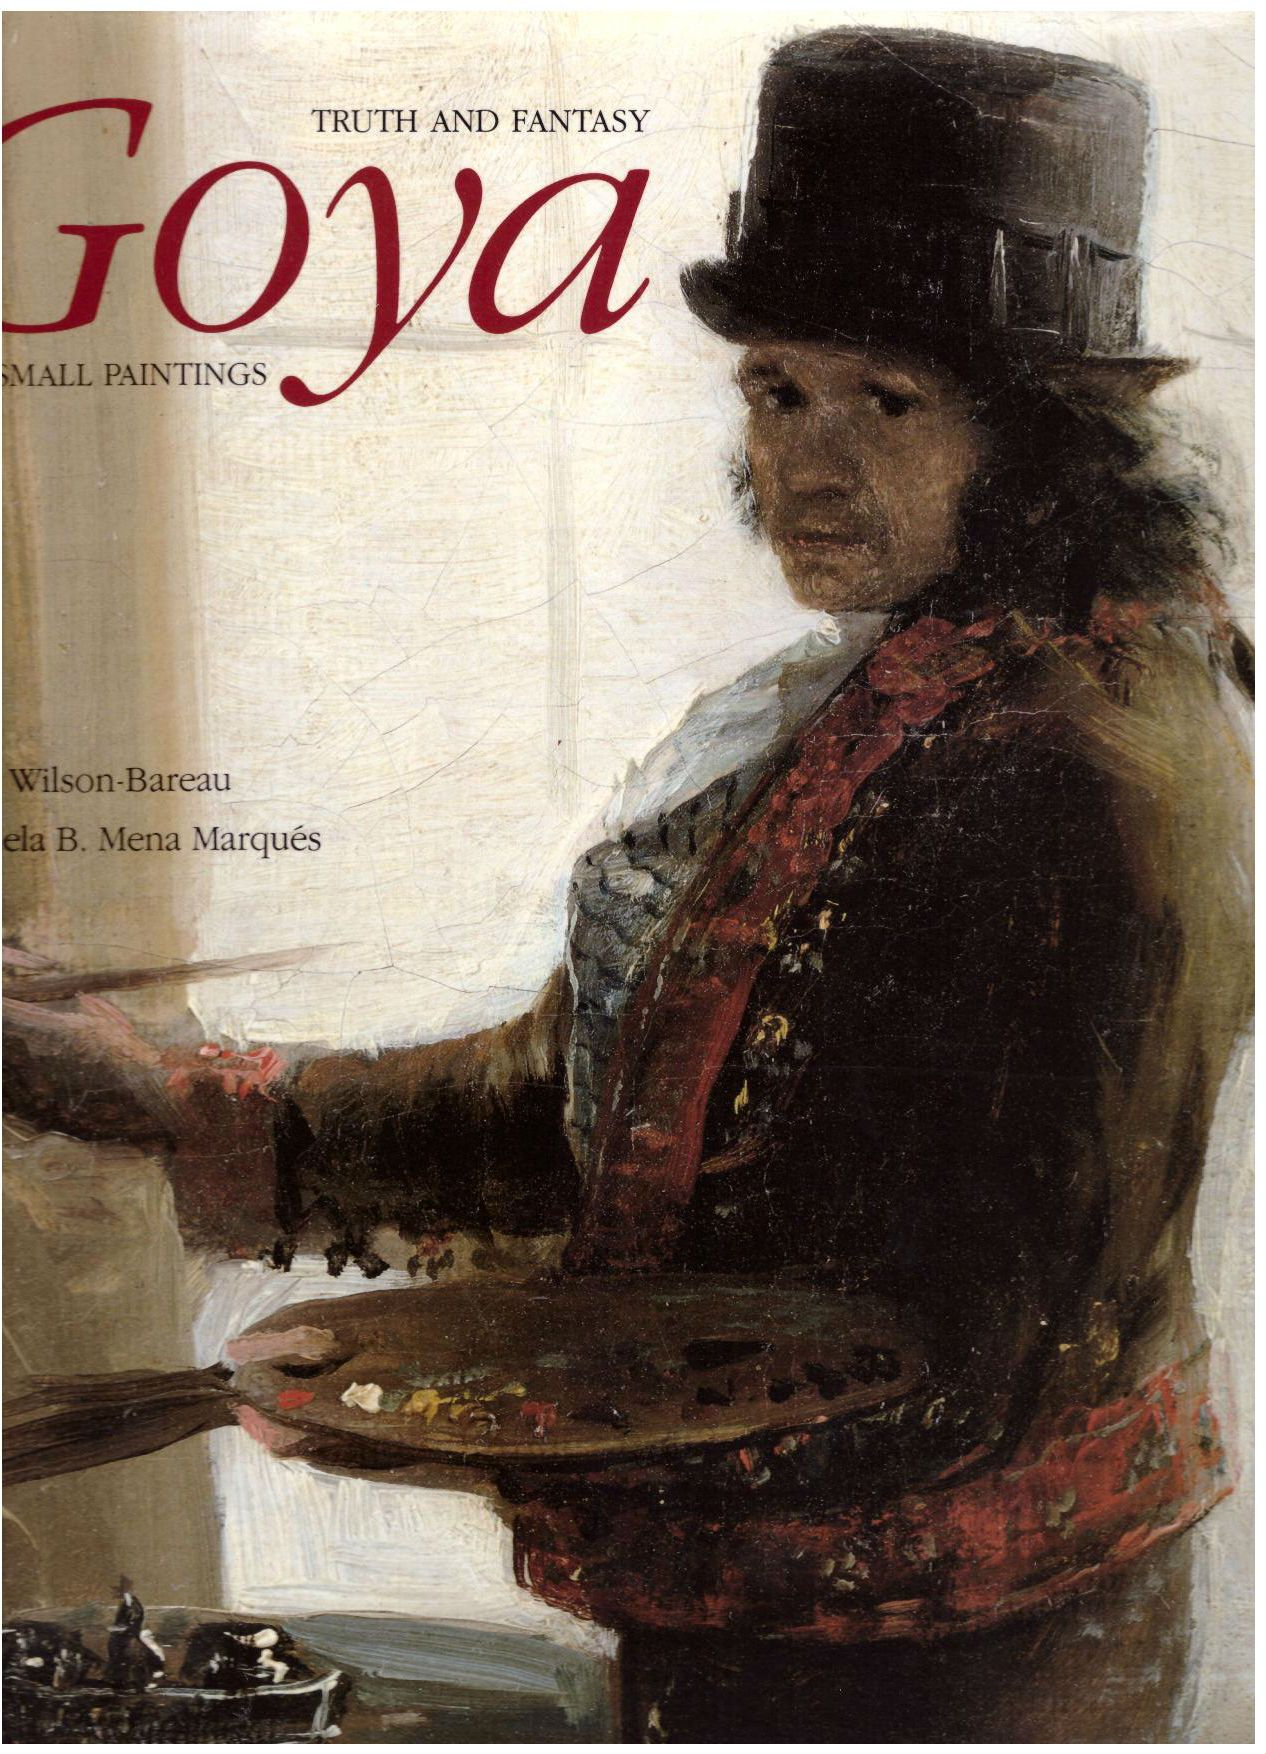 Goya: Truth and Fantasy: The Small Paintings, Juliet Wilson-Bareau; Manuela B. Mena Marqués